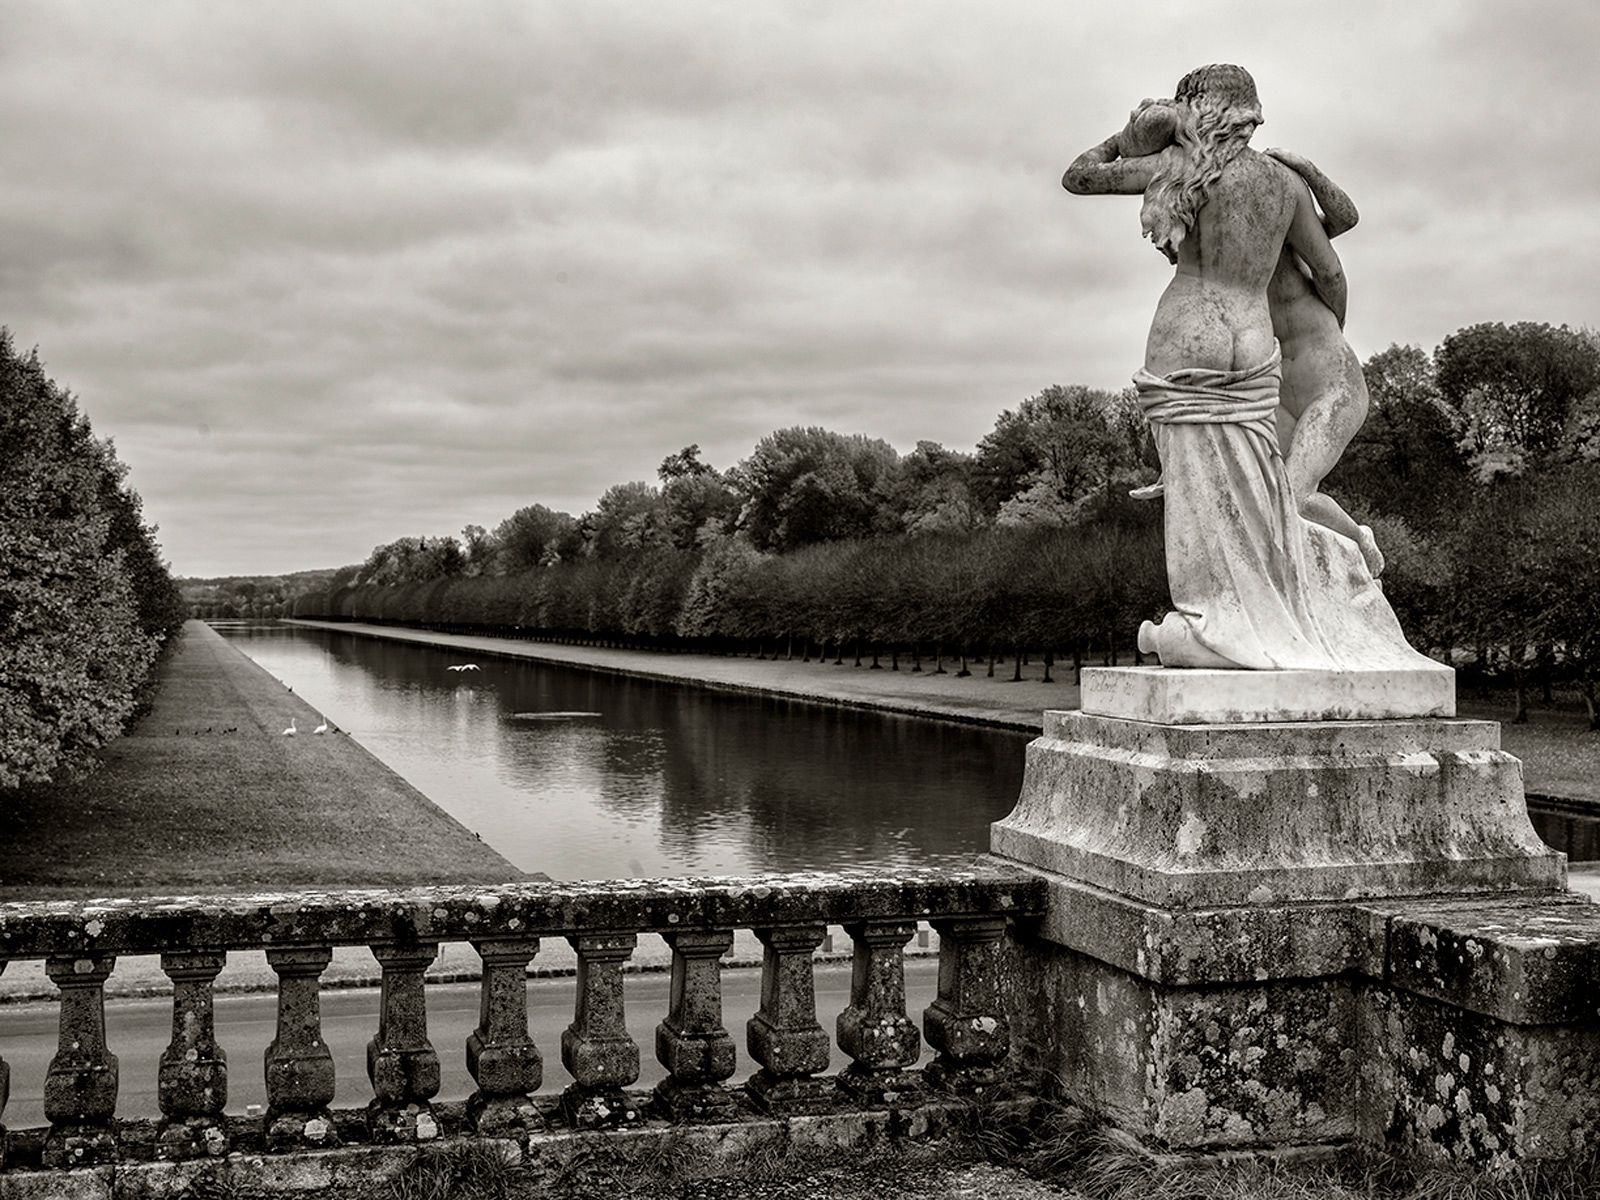 FONTAINEBLEAU SCULPTURE AND BALUSTRADE OVERLOOKING THE CANAL